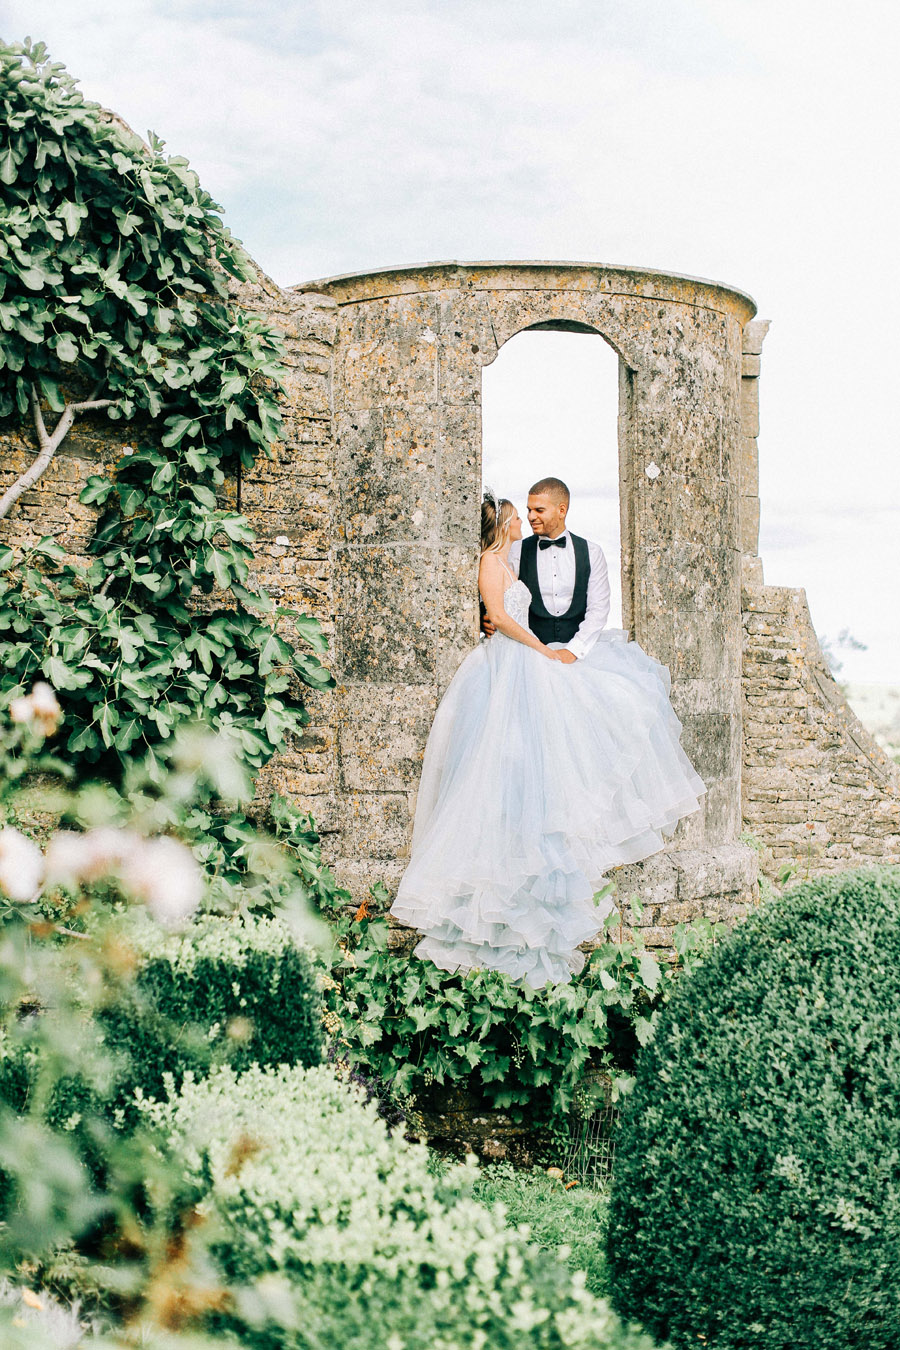 Enchanted Fairytale inspired shoot at Hamswell House, photography credit Charlotte Wise, wedding planner Lucy Ann Reid (32)